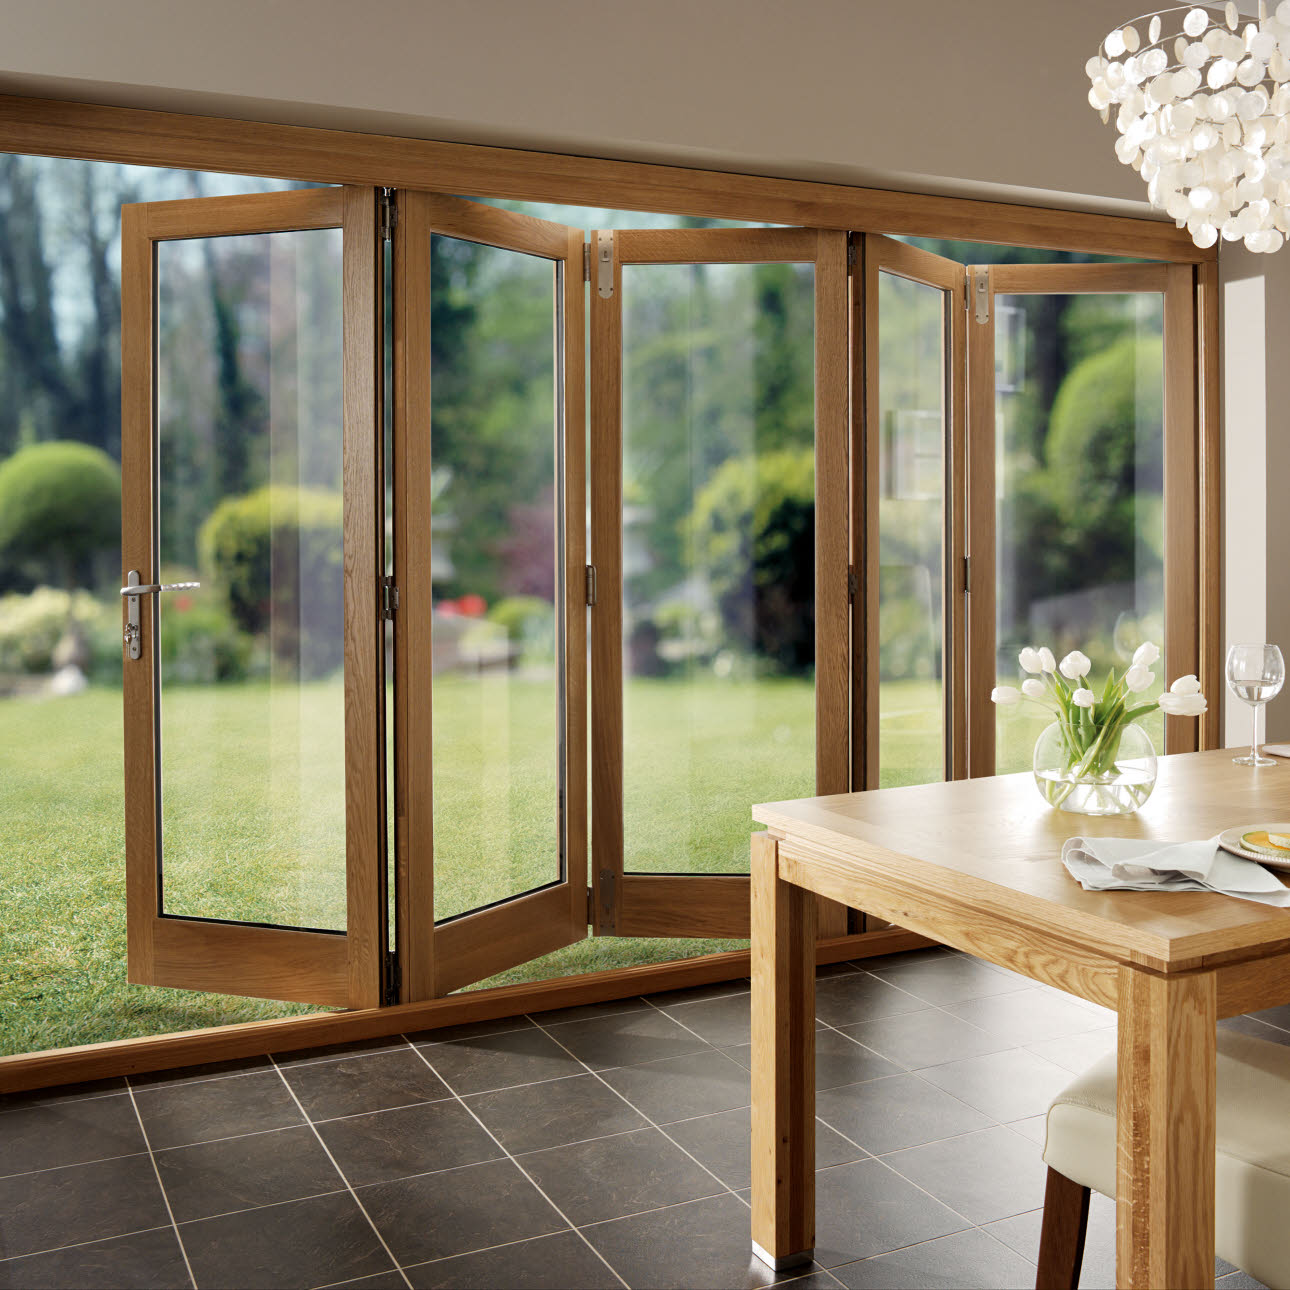 Timber folding kitchen door, opening towards garden